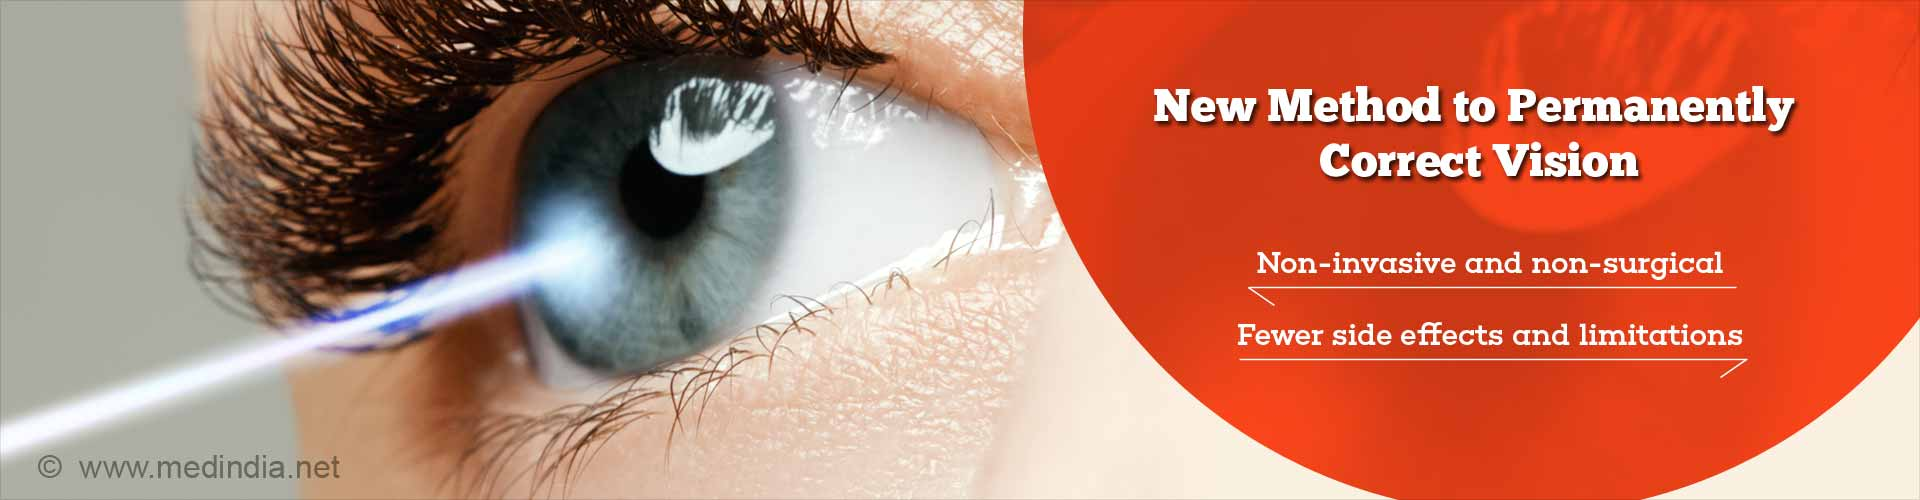 New method to permanently correct vision. Non-invasive and non-surgical. Fewer side effects and limitations.